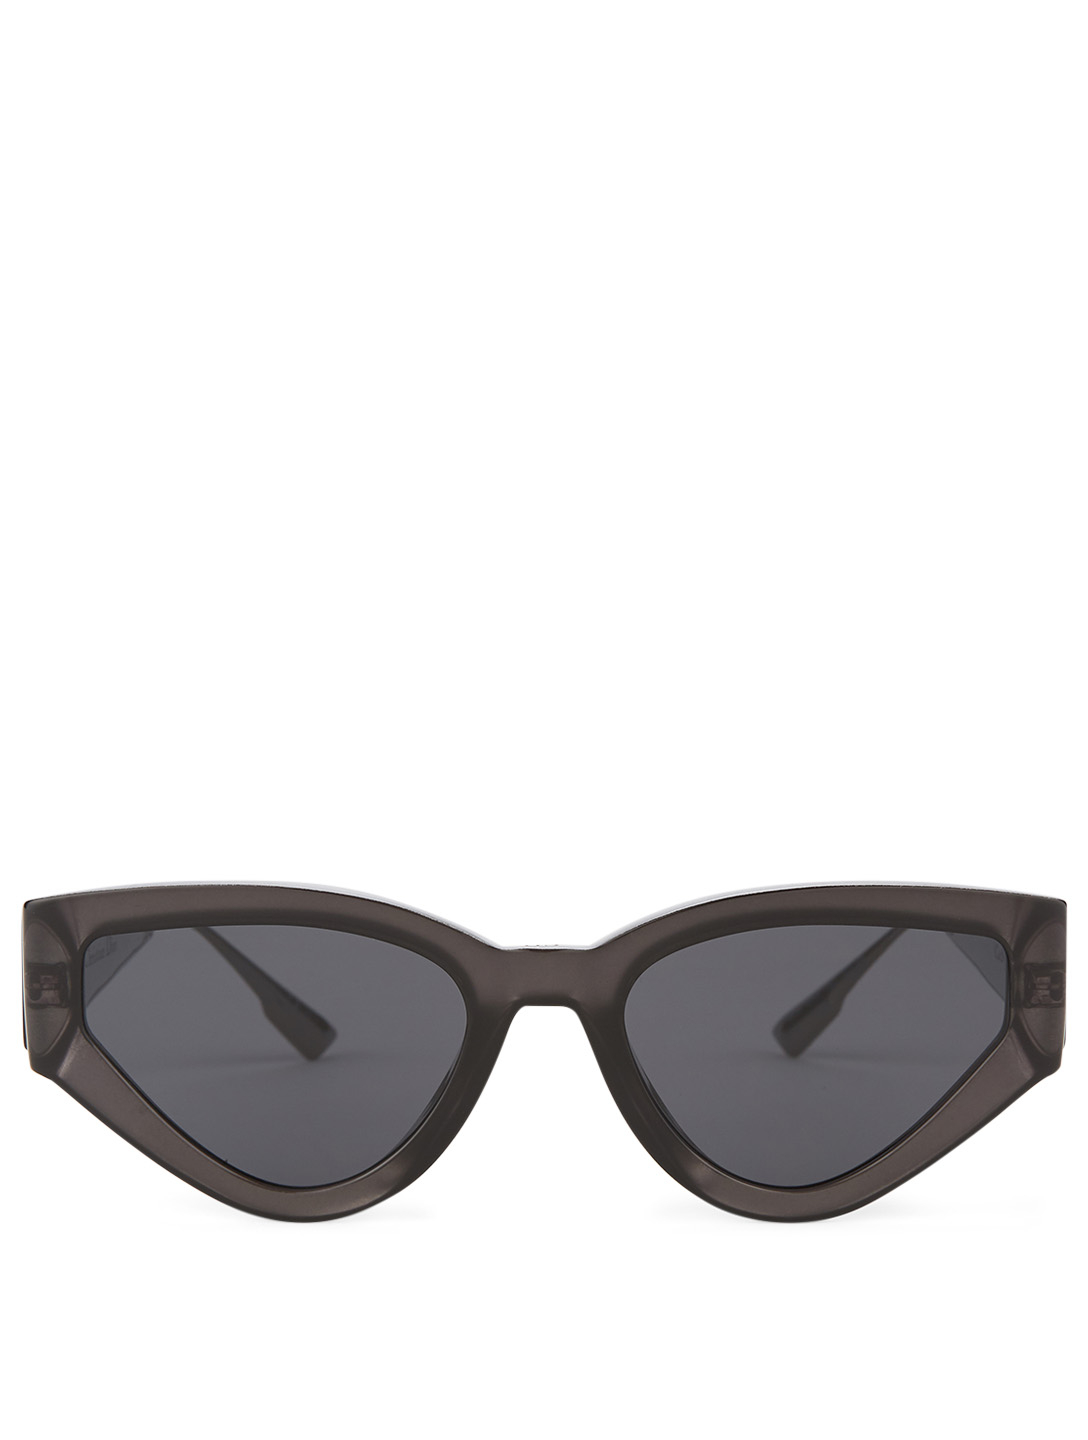 DIOR CatStyleDior1 Cat Eye Sunglasses Women's Brown